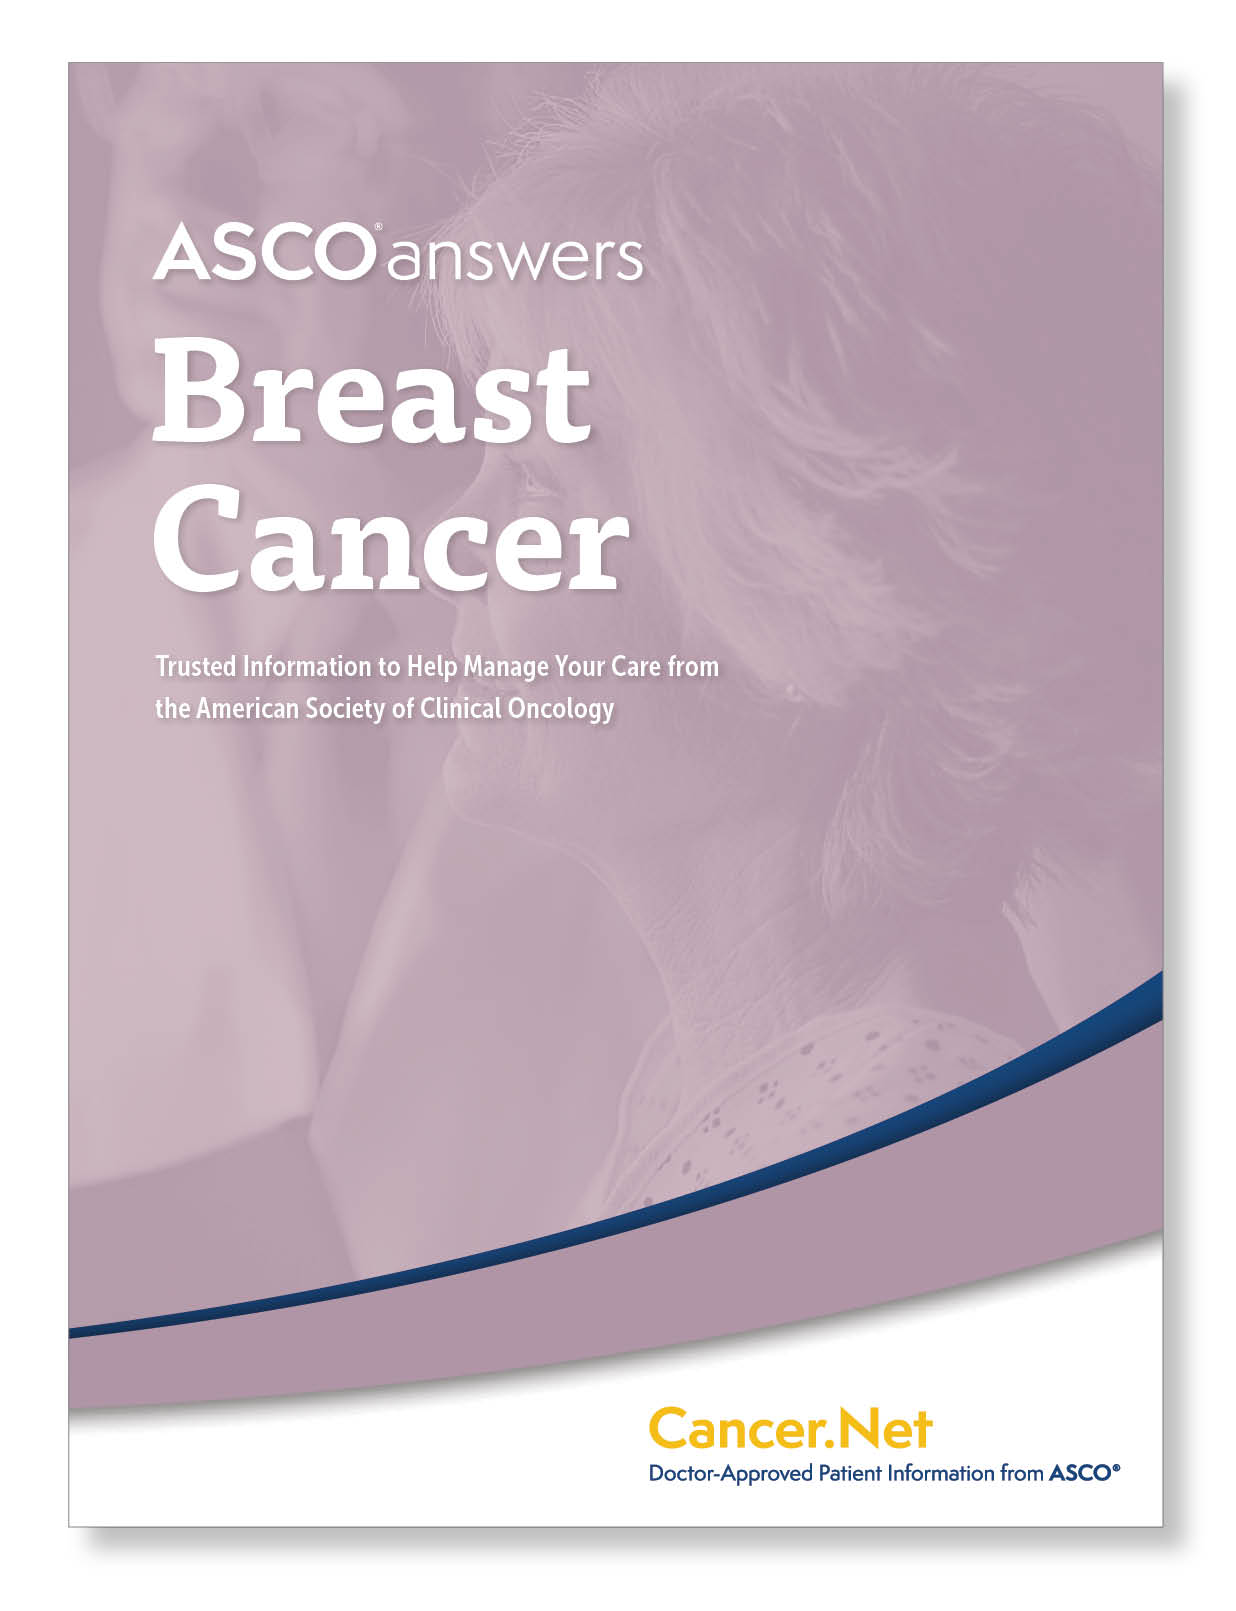 ASCO Answers Guide: Breast Cancer Updated with New AJCC Staging (pack of 25 guides)